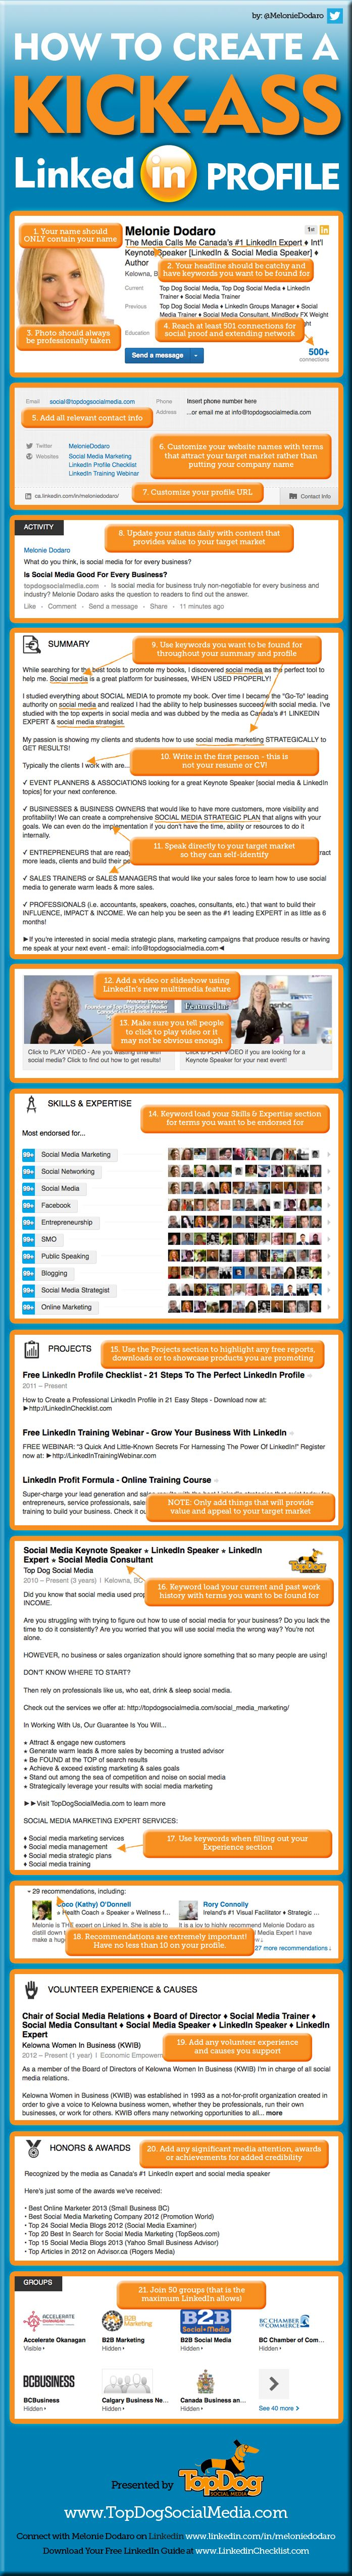 24 Best Life Skills Interviewing Tips Resumes Mentoring Images On